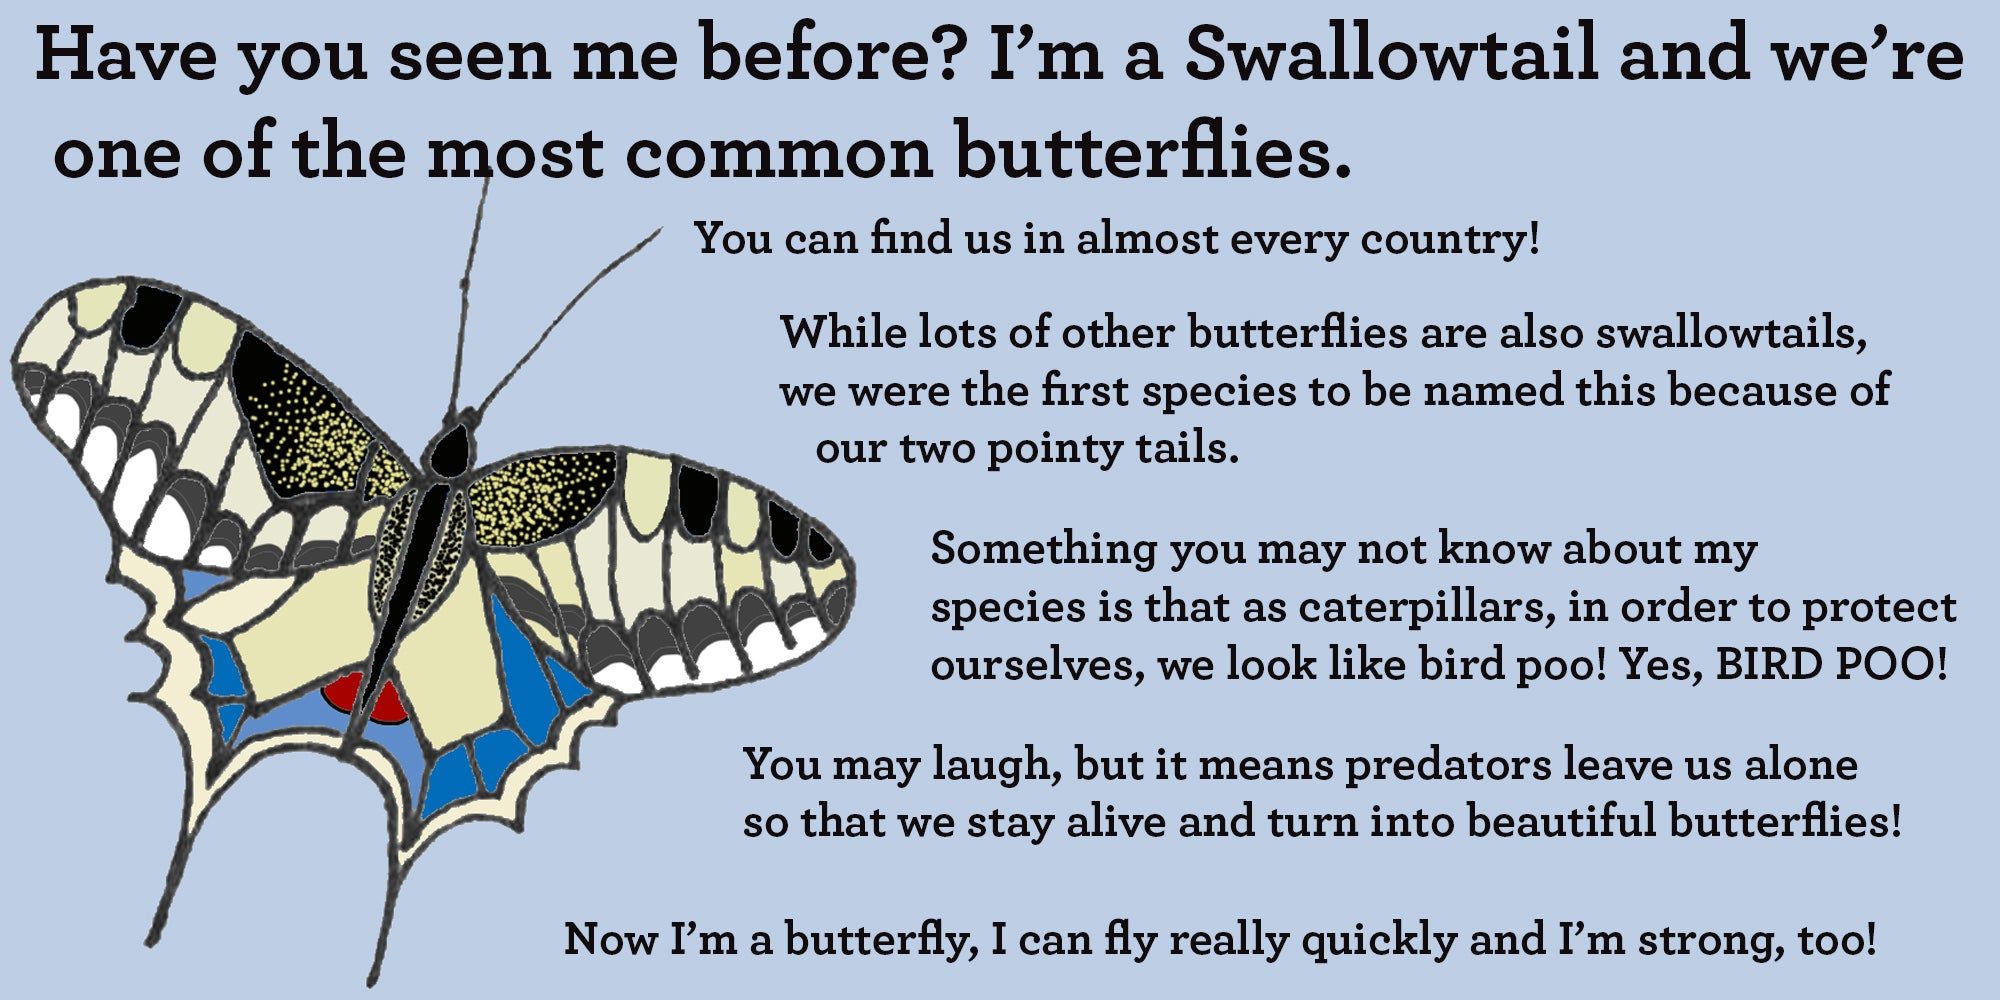 swallowtail butterfly facts